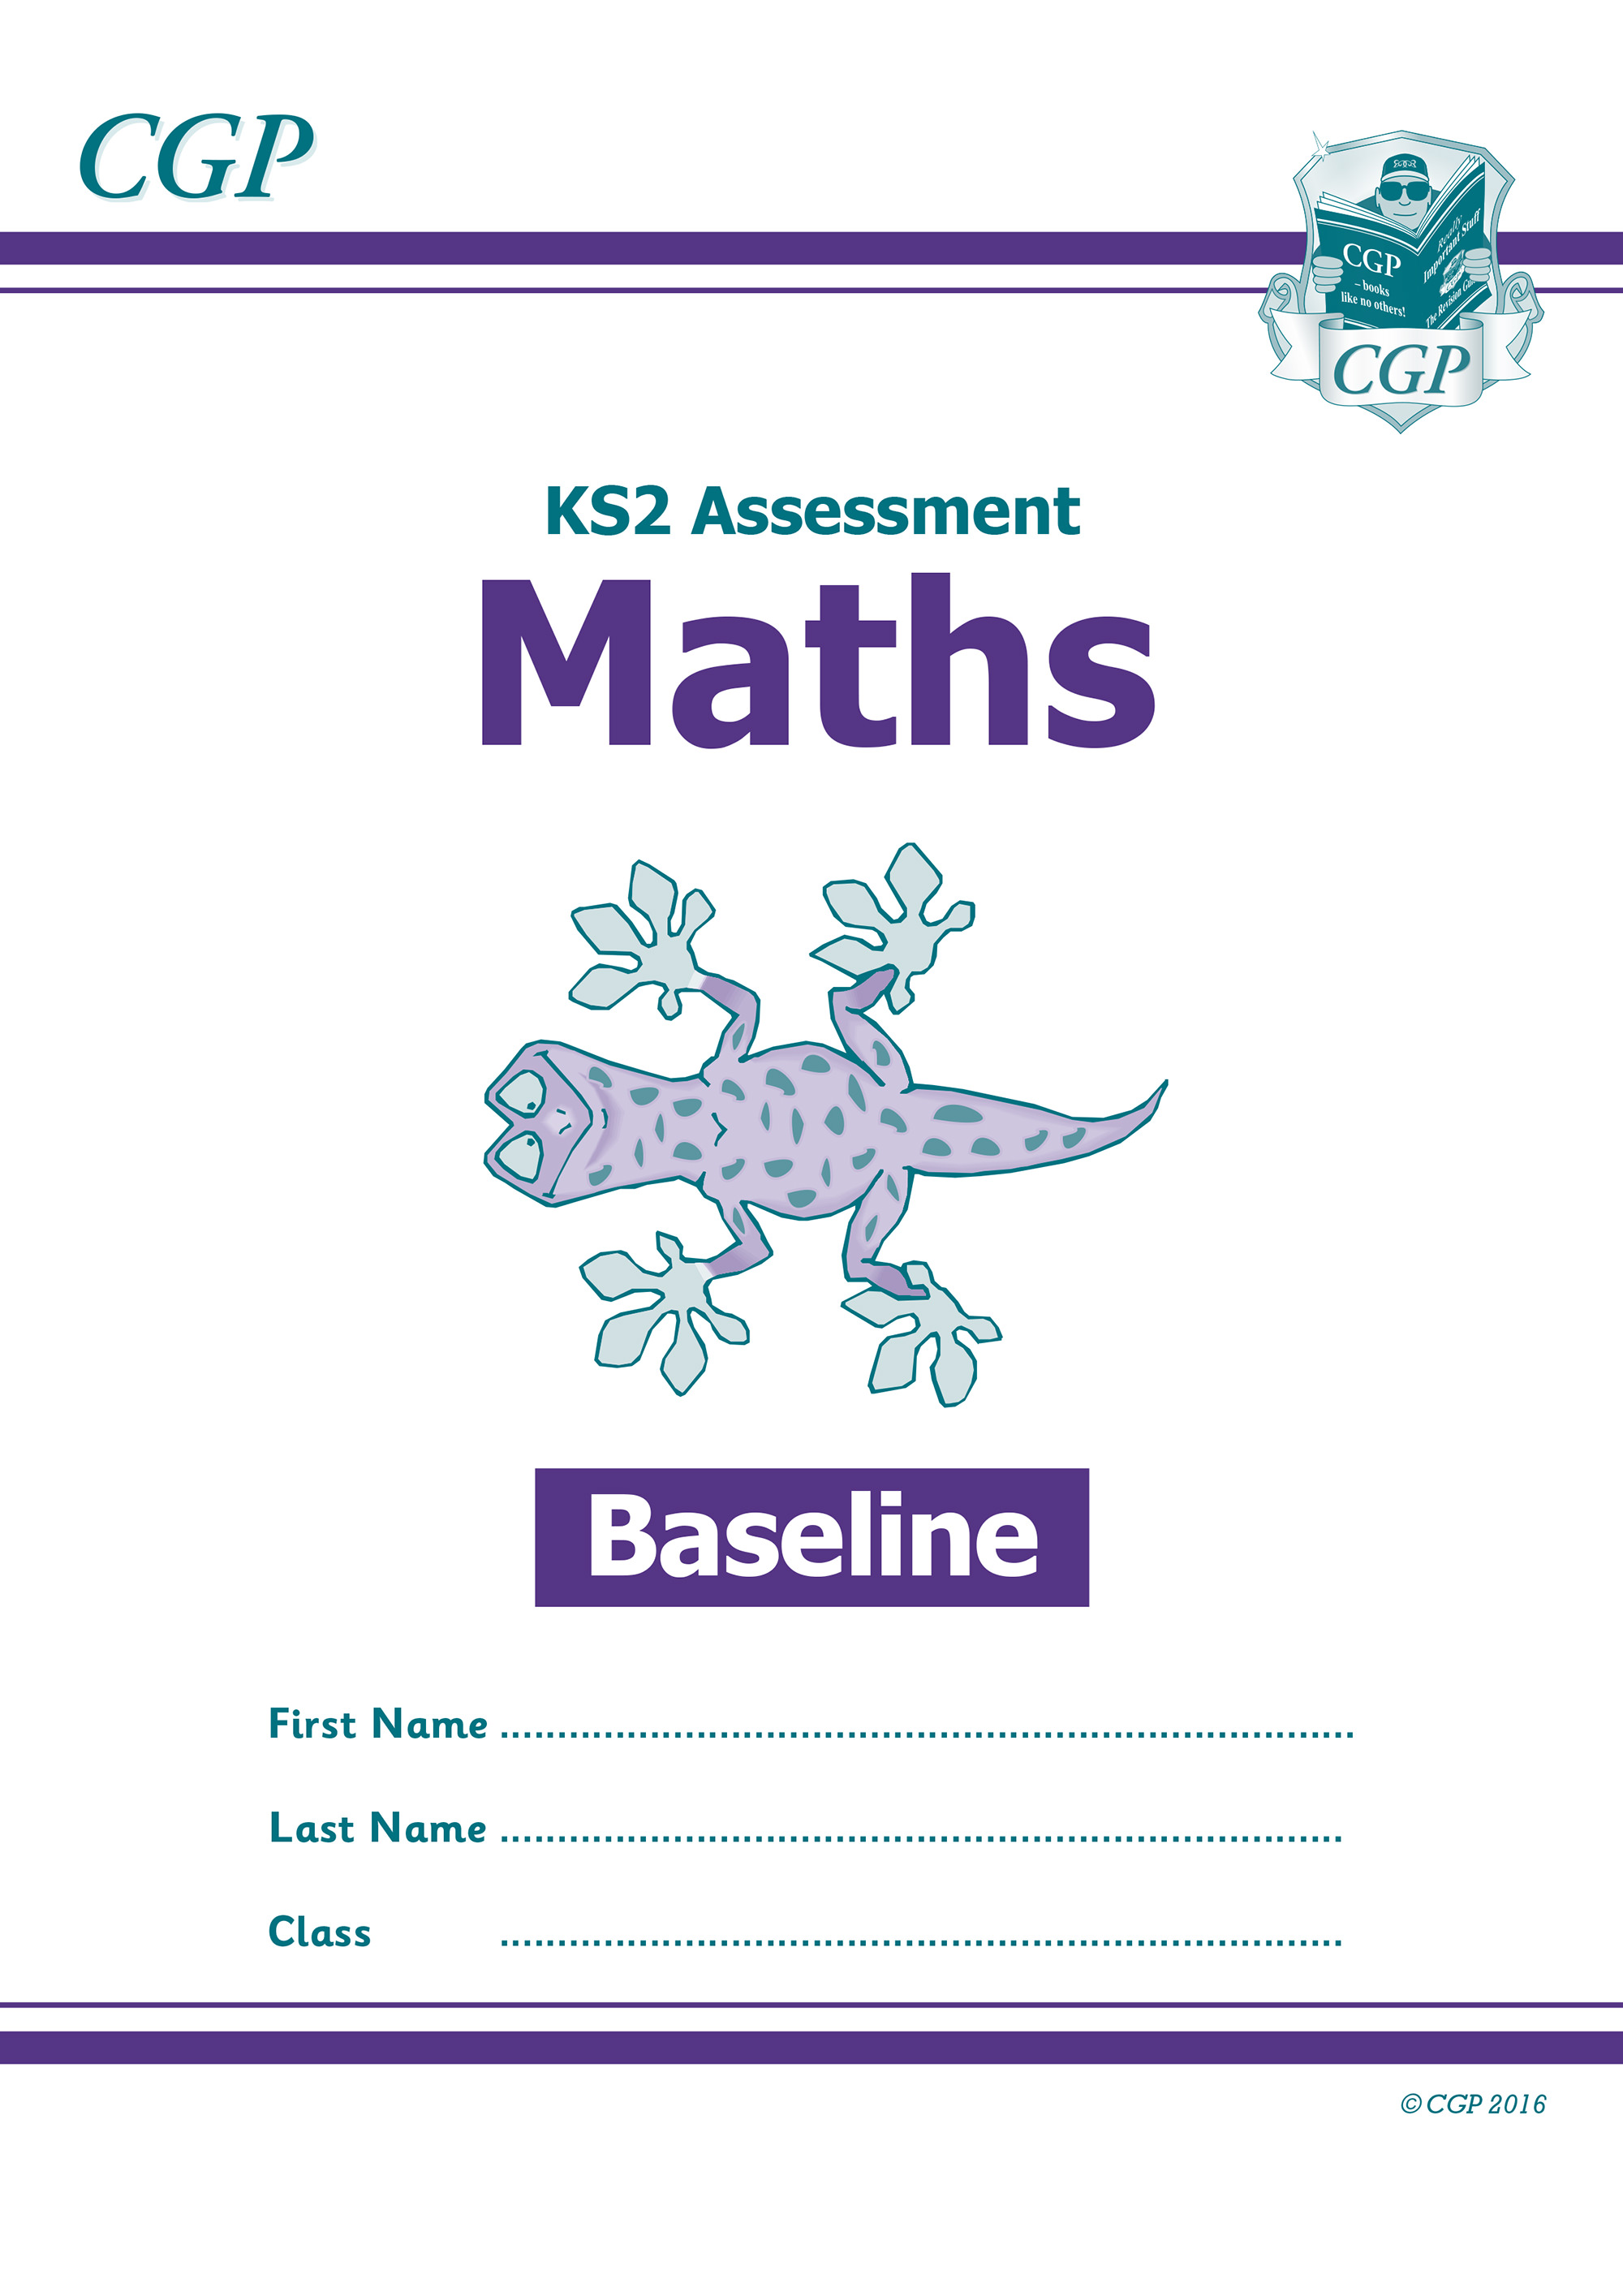 MBP21 - KS2 Assessment: Maths - Baseline Test